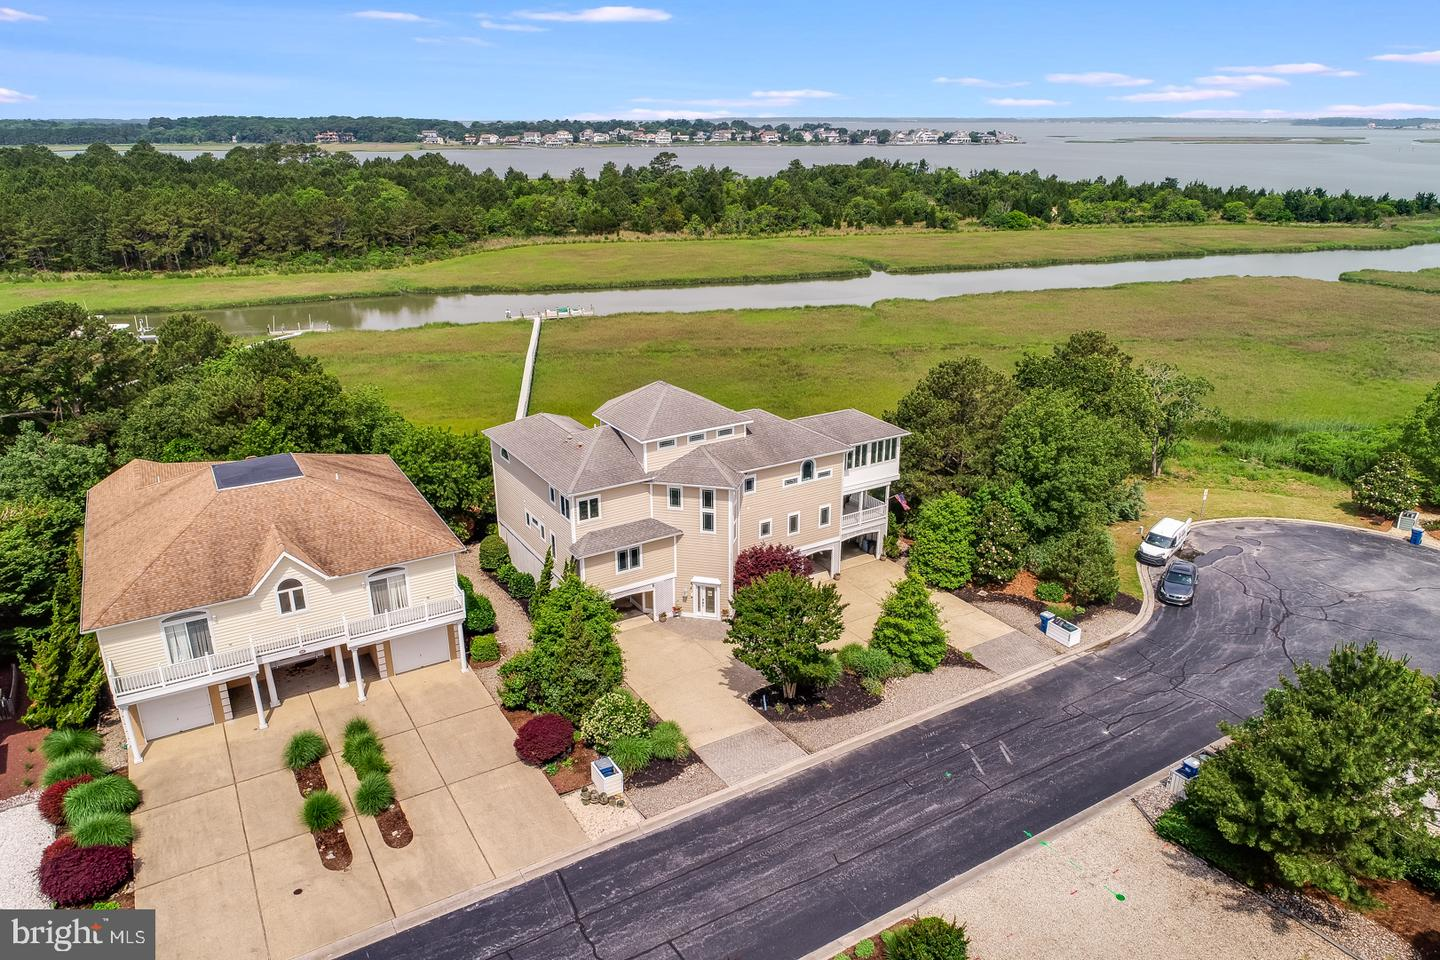 DESU144366-301896694739-2019-08-01-10-15-19 305 Le Pointe Dr | North Bethany, De Real Estate For Sale | MLS# Desu144366  - Suzanne Macnab